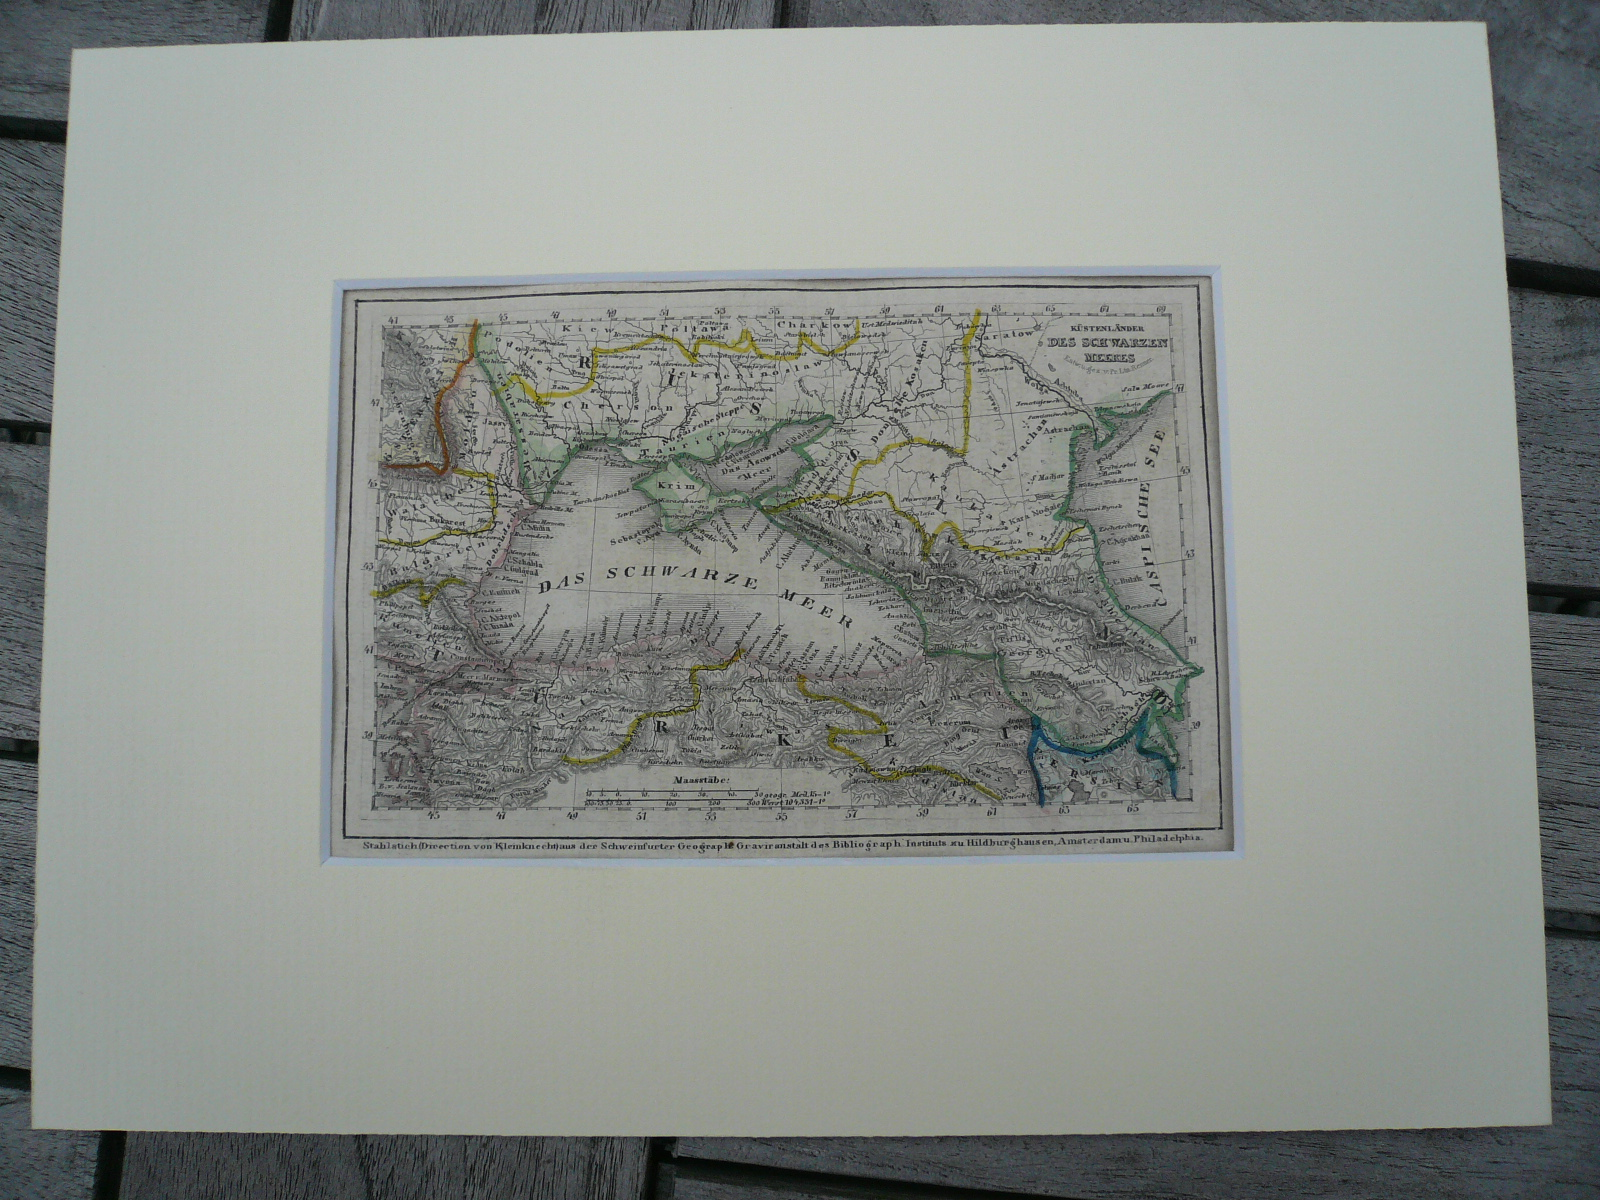 Black Sea, anno 1850, steelengraving